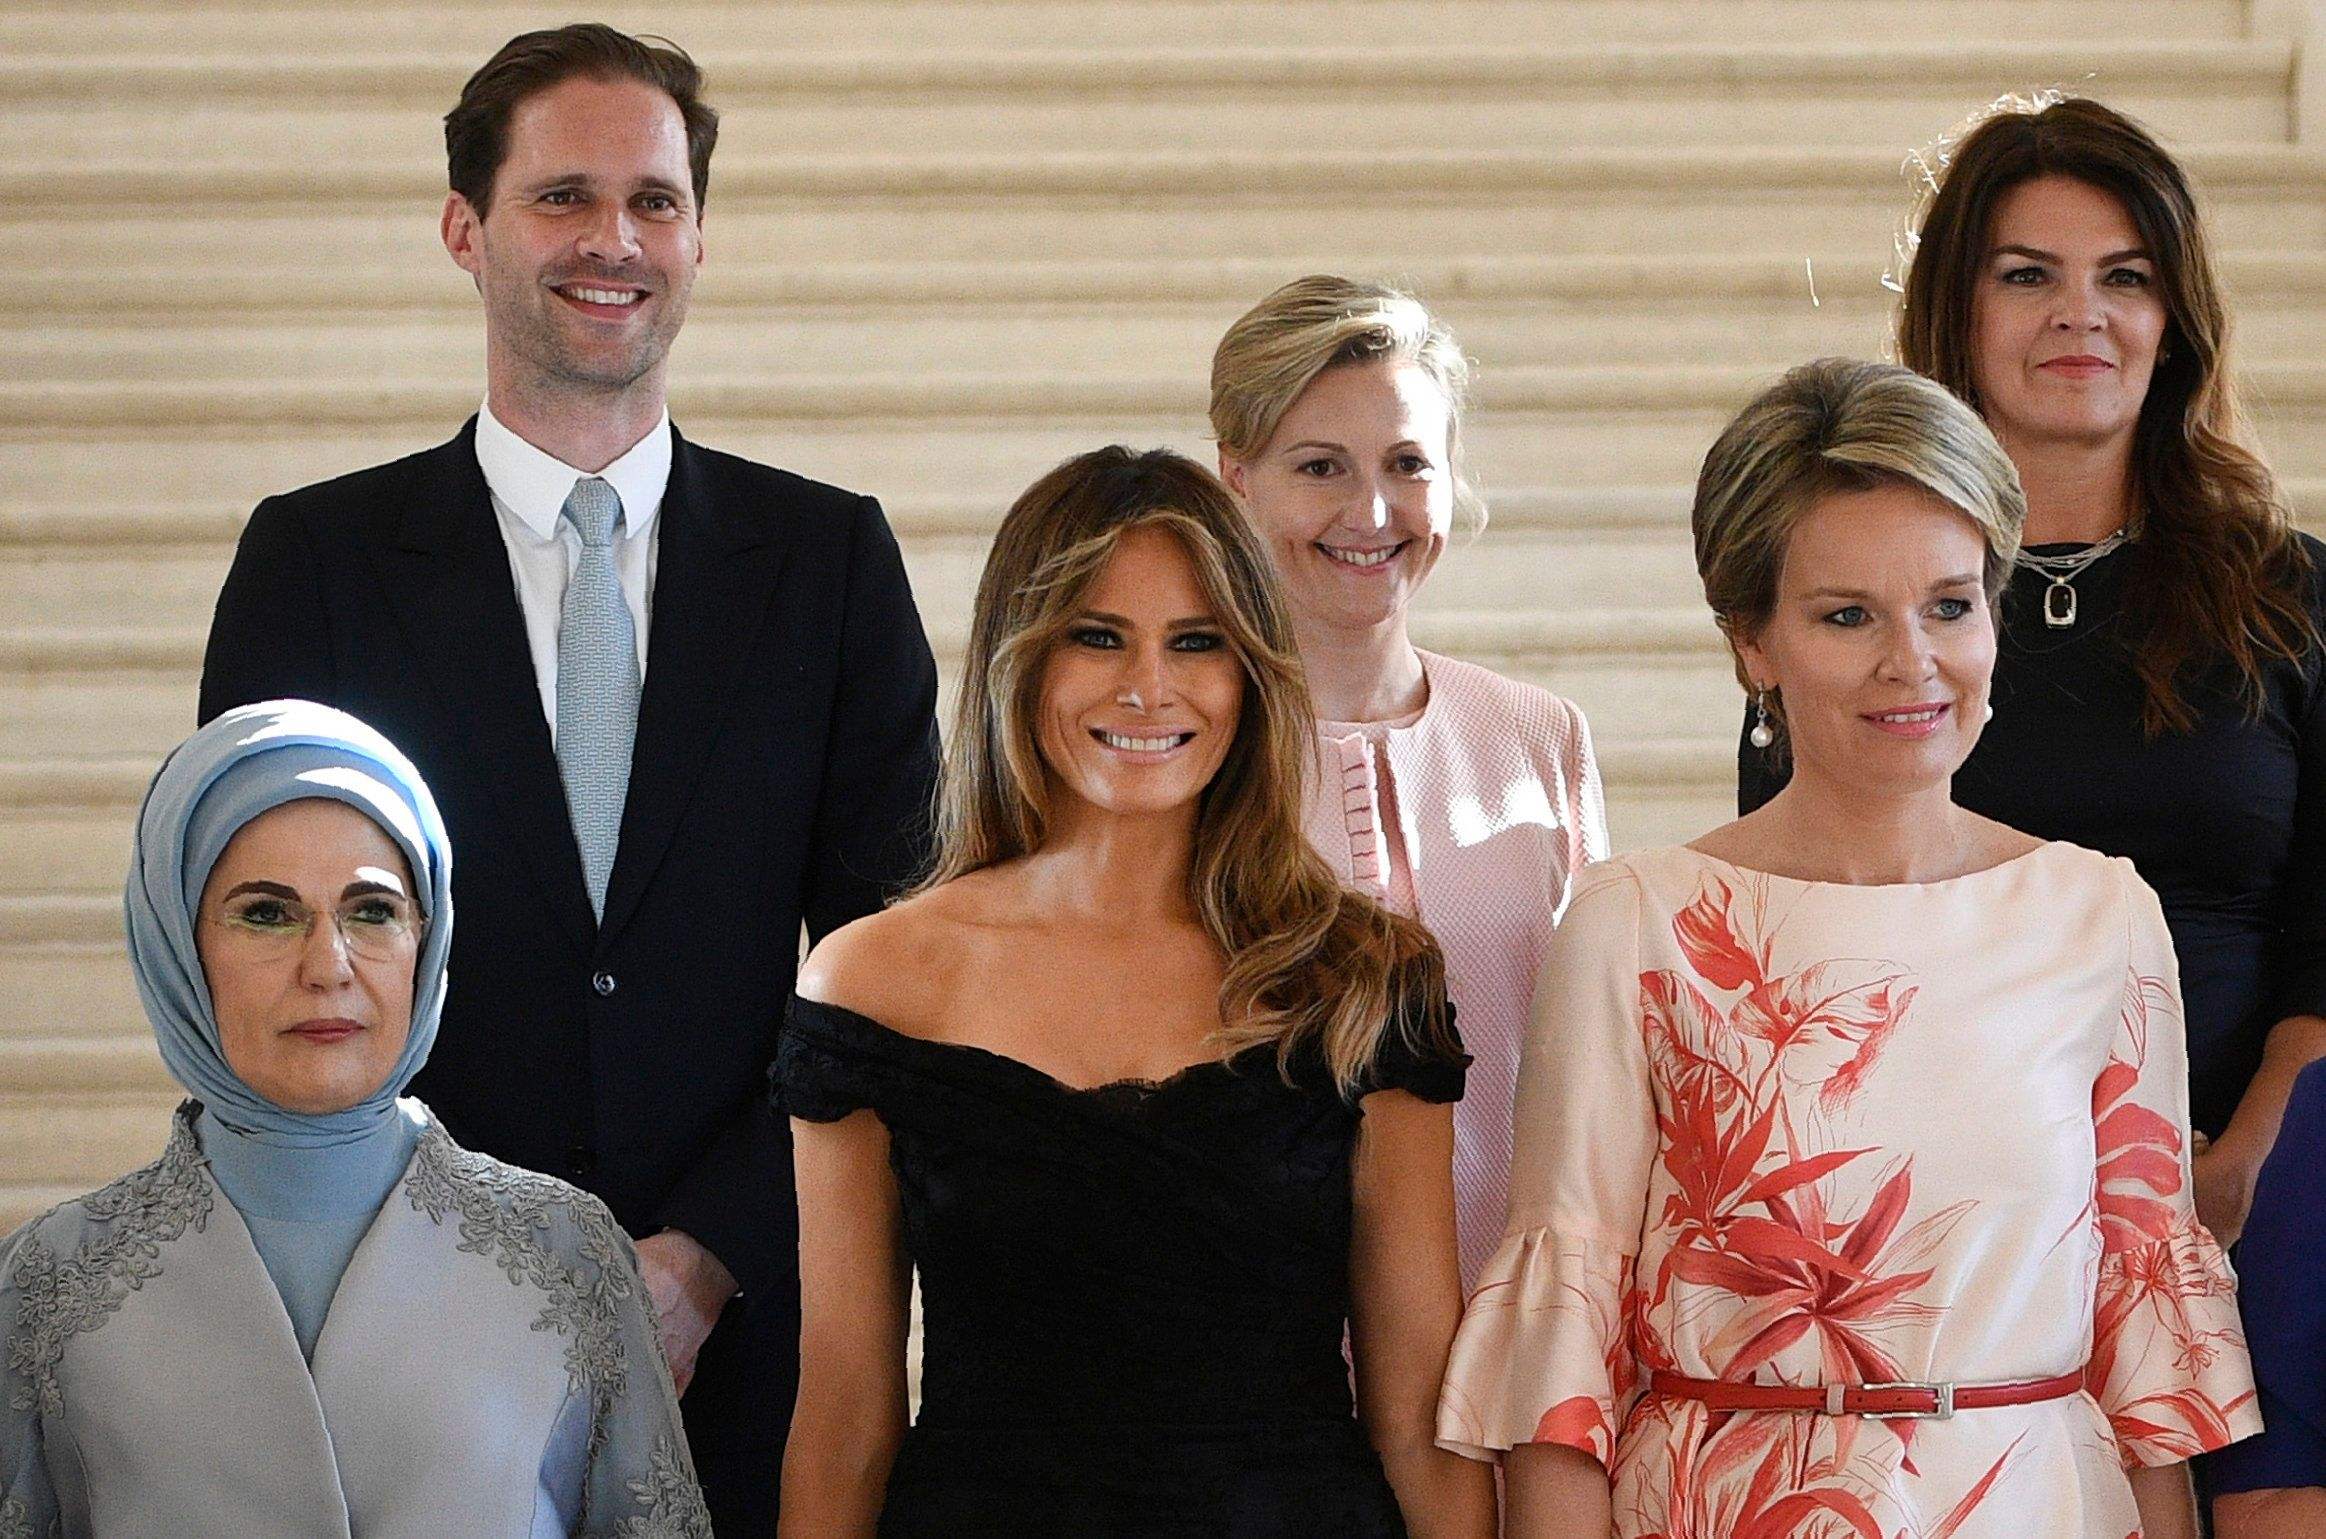 Luxembourg's 'First Gentleman' Gloriously Photographed With Partners Of World